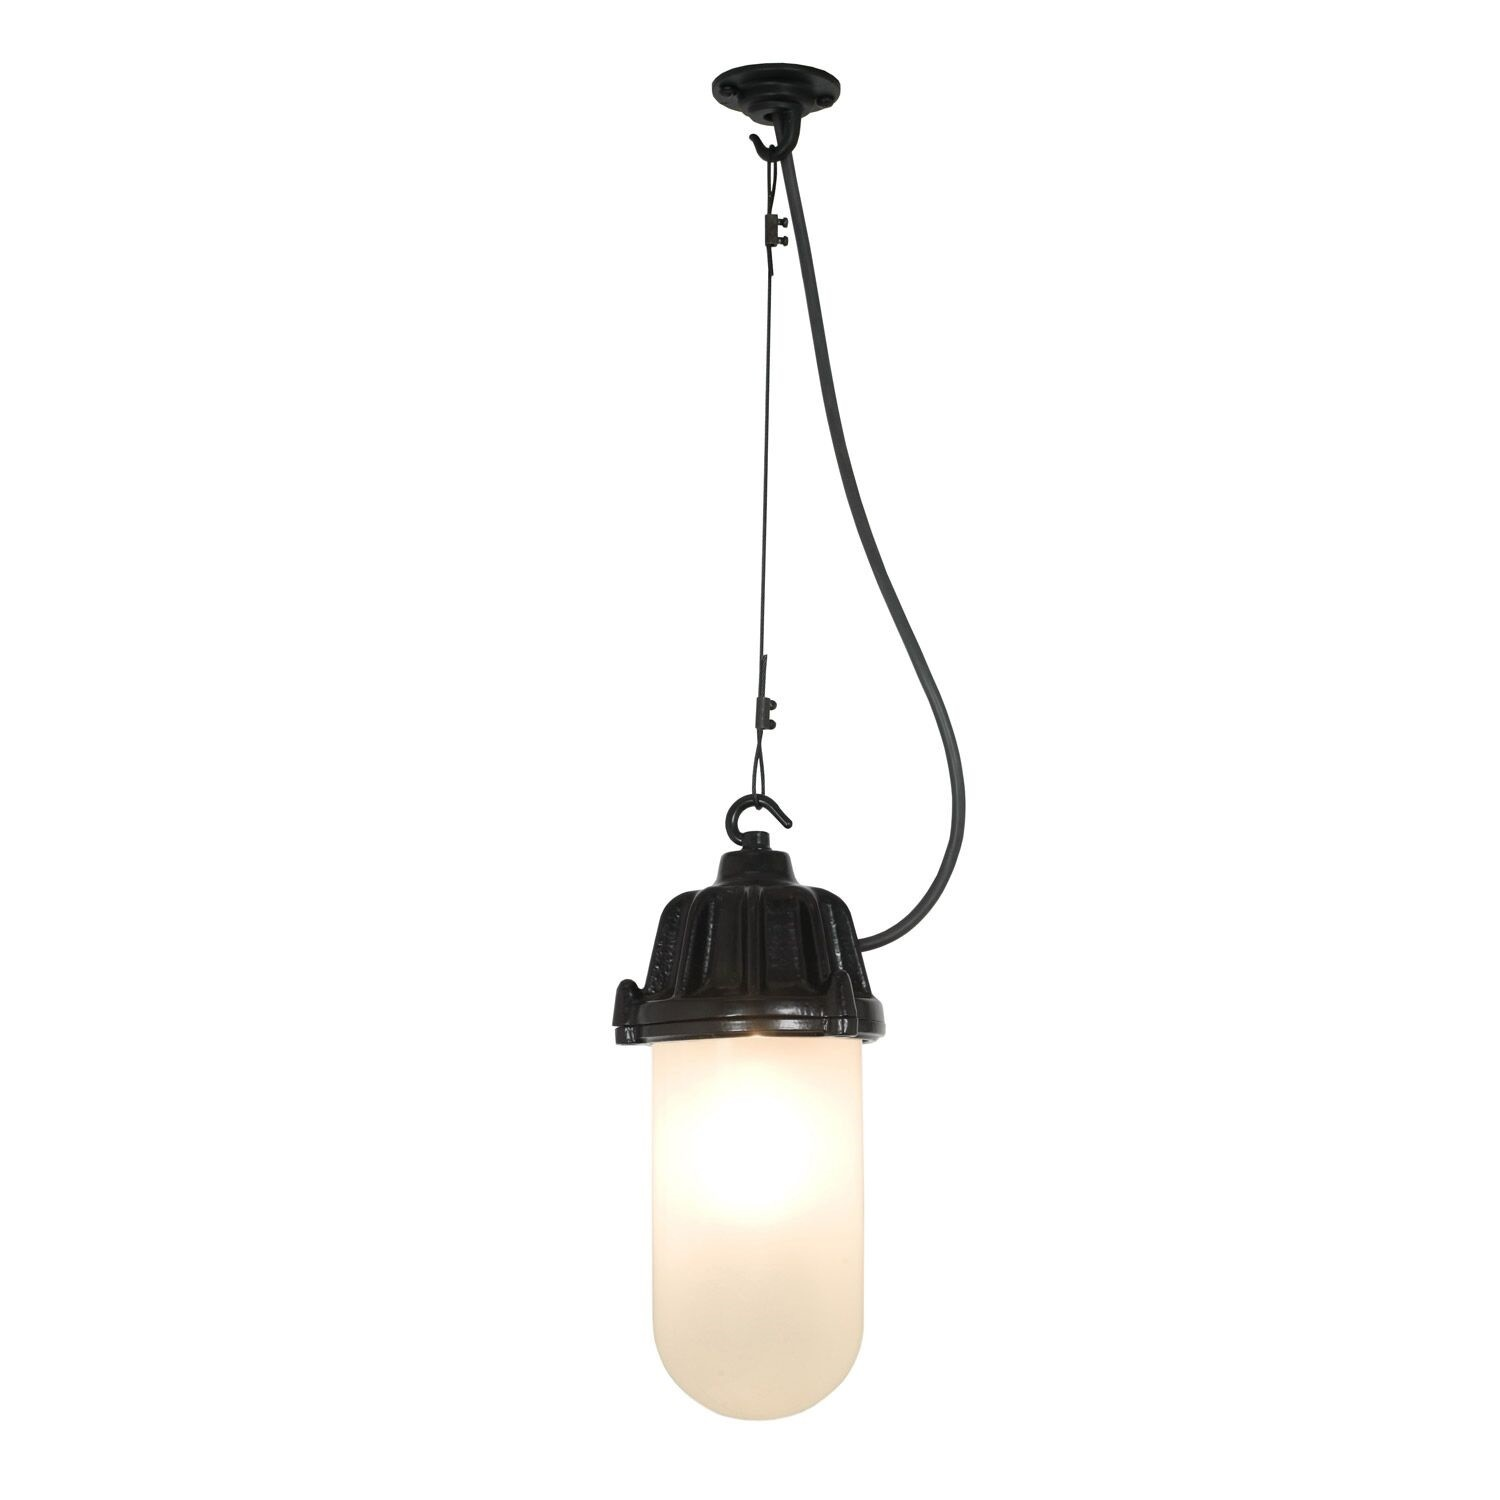 Dockside Pendant Light 7674 Black, Frosted glass